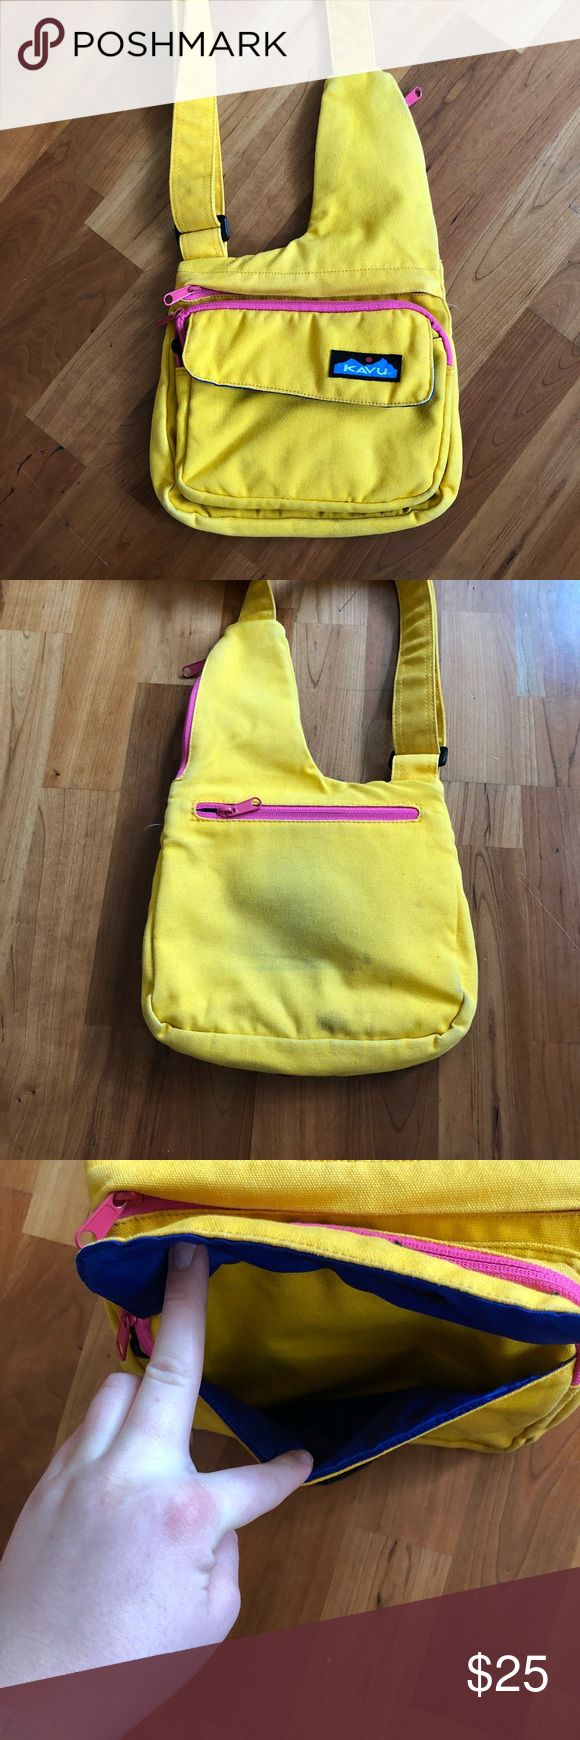 {Kavu} Seattle Sling Kavu Seattle sling in yellow with pink detailing. Good condition, the only wear on this bag is blue on the back from rubbing against jeans. But obviously you won't notice it while it's on. This is an amazing travel bag with its 3 main compartments, pockets galore and a sunglasses holder. It holds everything you need and keeps you organized while you adventure. Kavu Bags